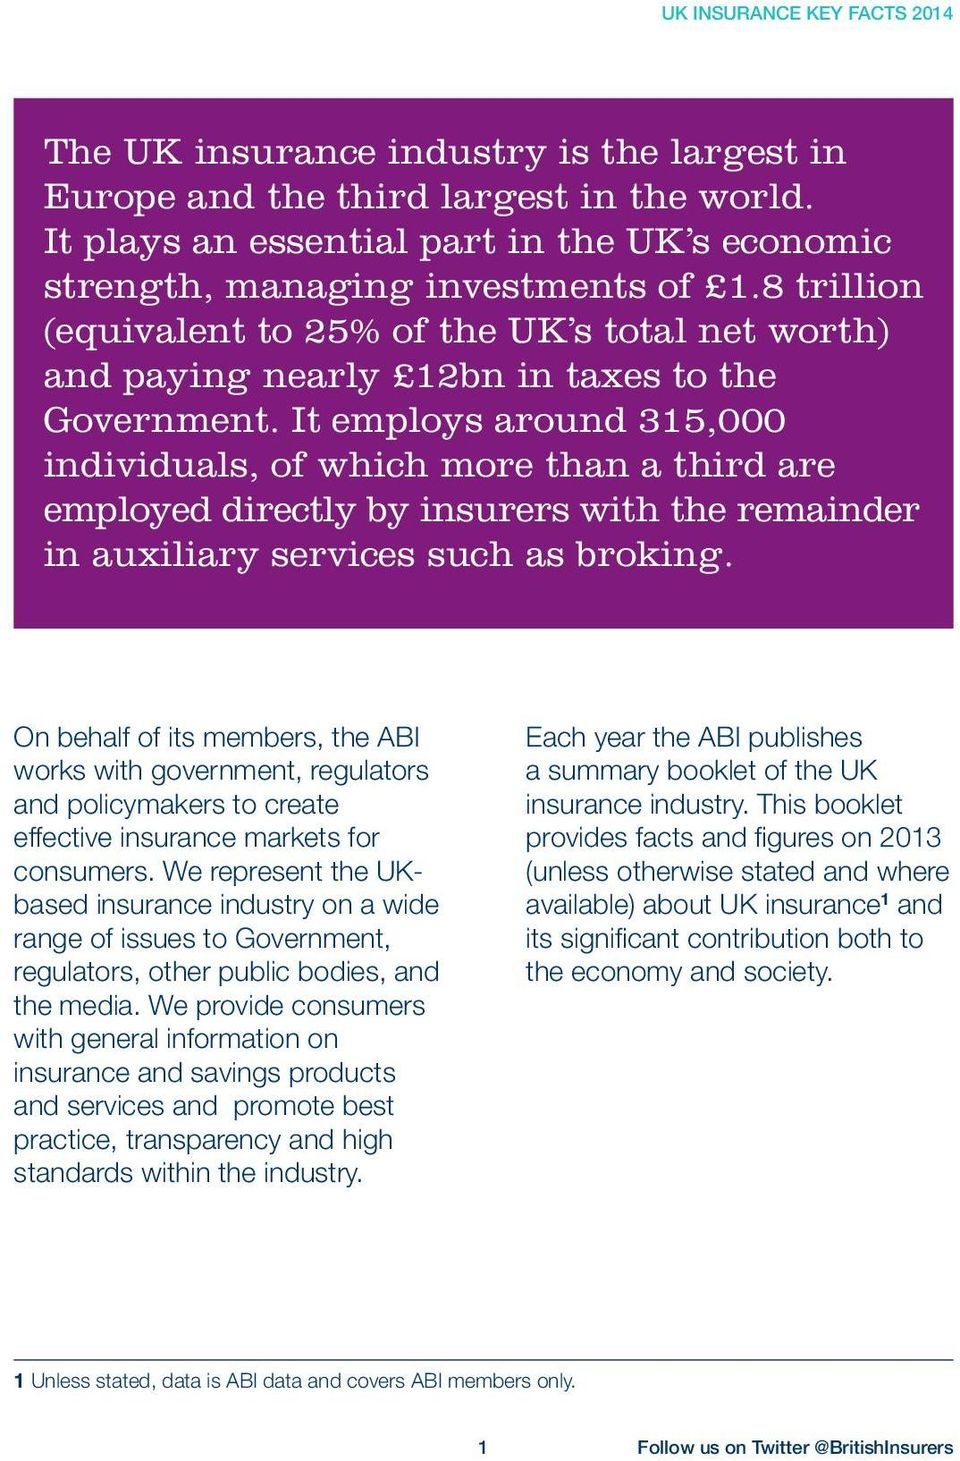 It employs around 315,000 individuals, of which more than a third are employed directly by insurers with the remainder in auxiliary services such as broking.